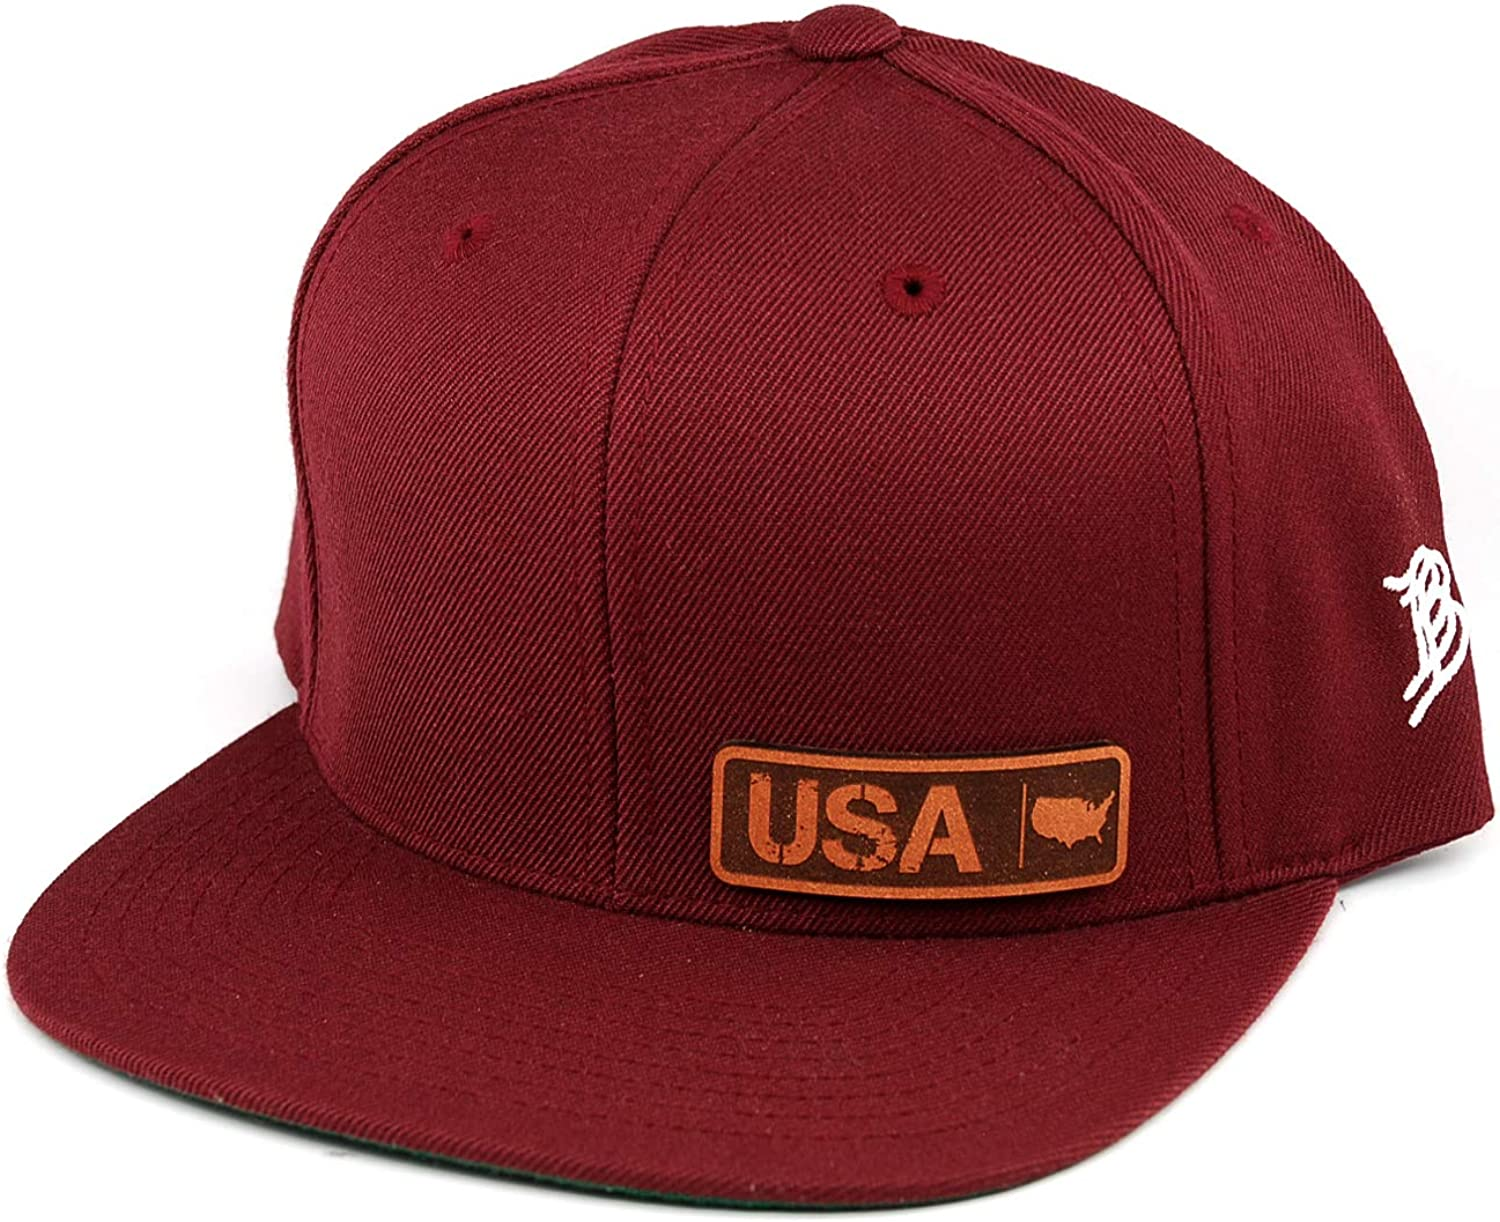 Branded Bills /'USA Native Leather Patch Snapback Hat OSFA//Maroon